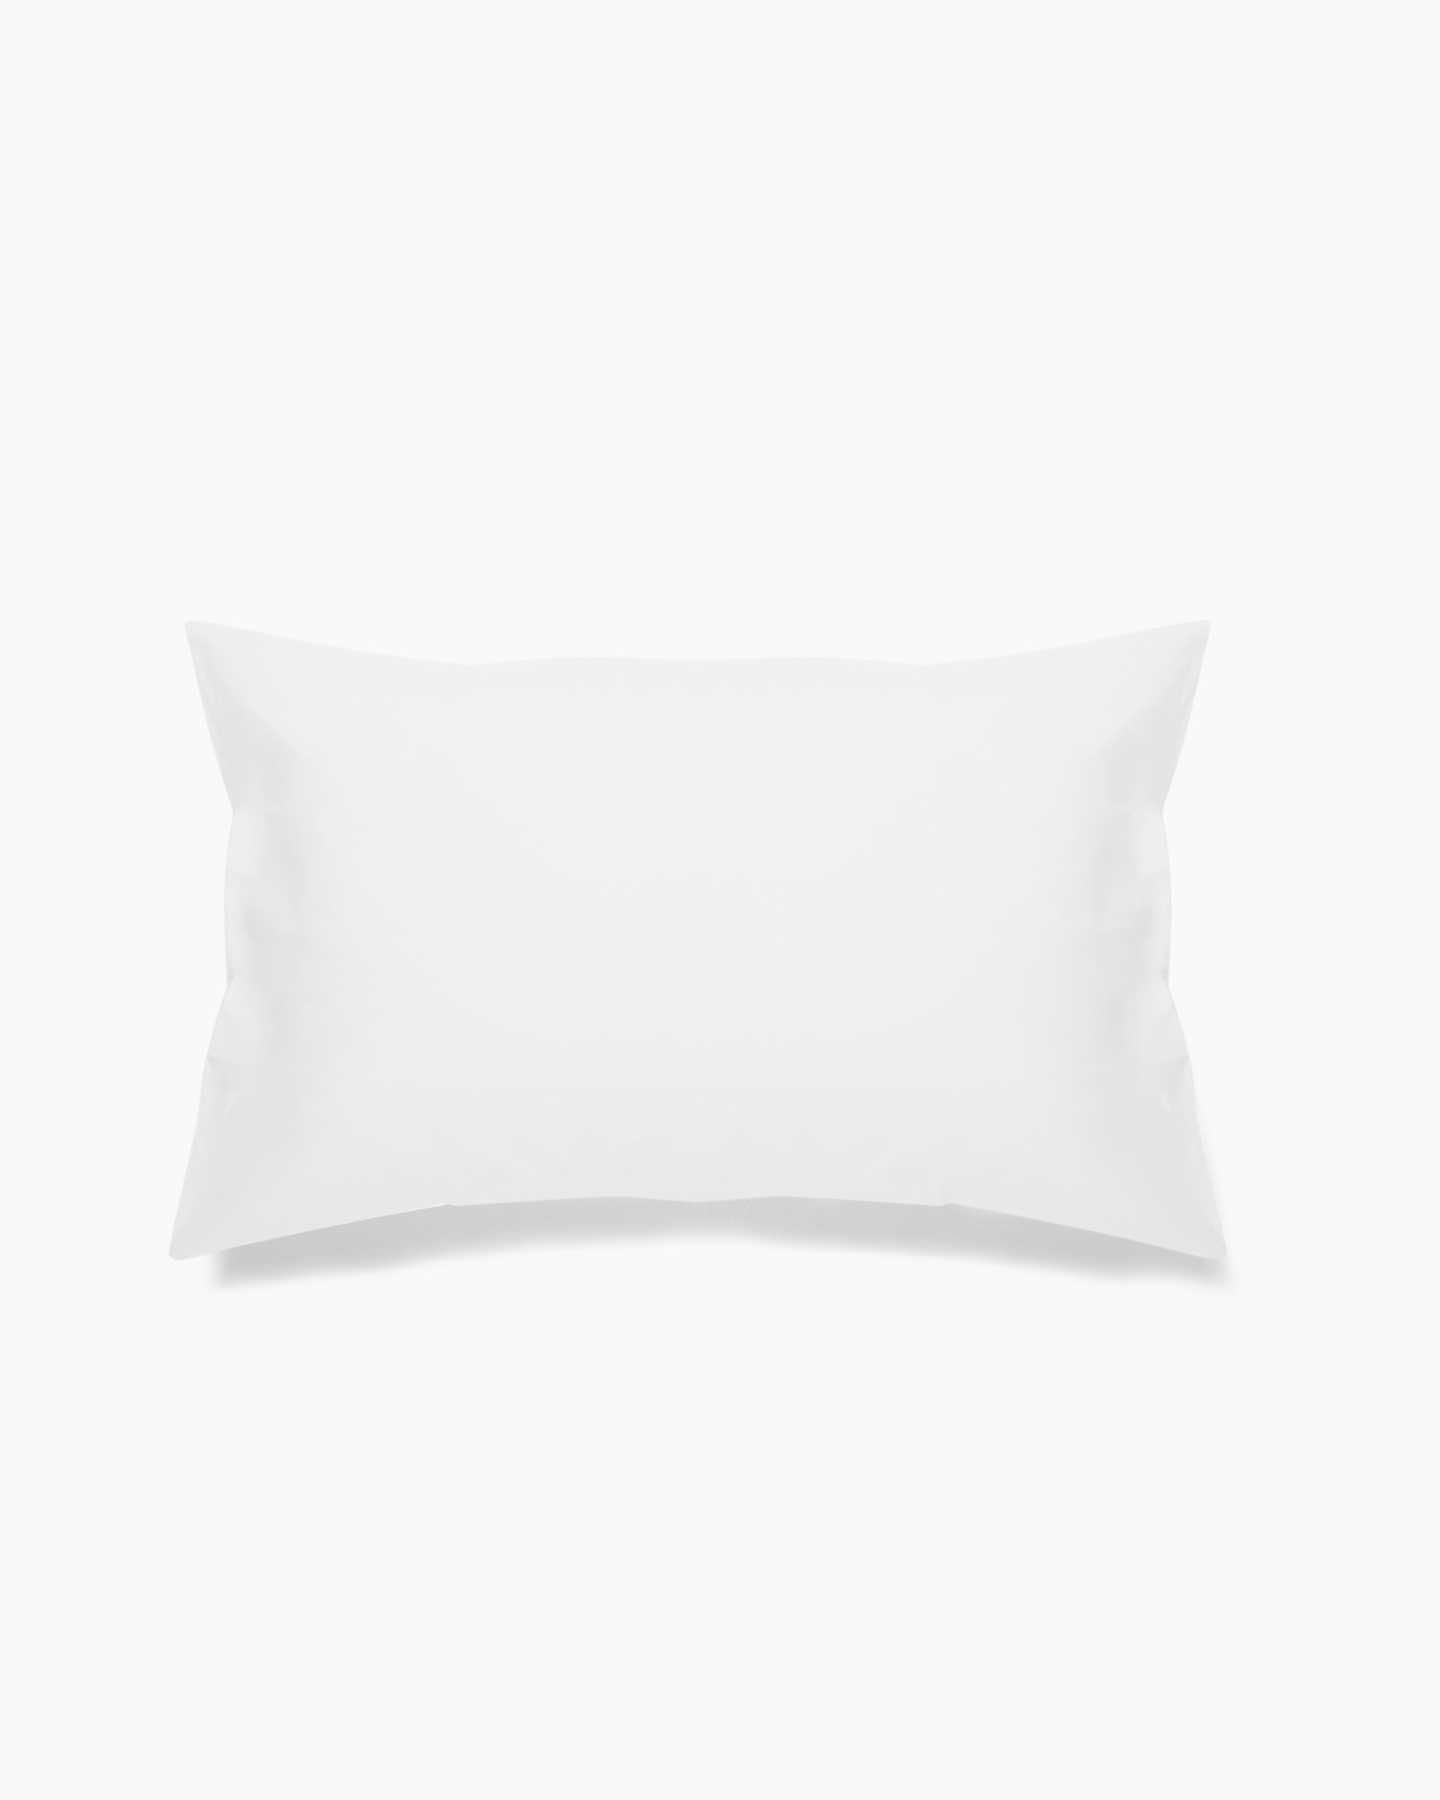 You May Also Like - Organic Percale Luxe Pillowcases - White